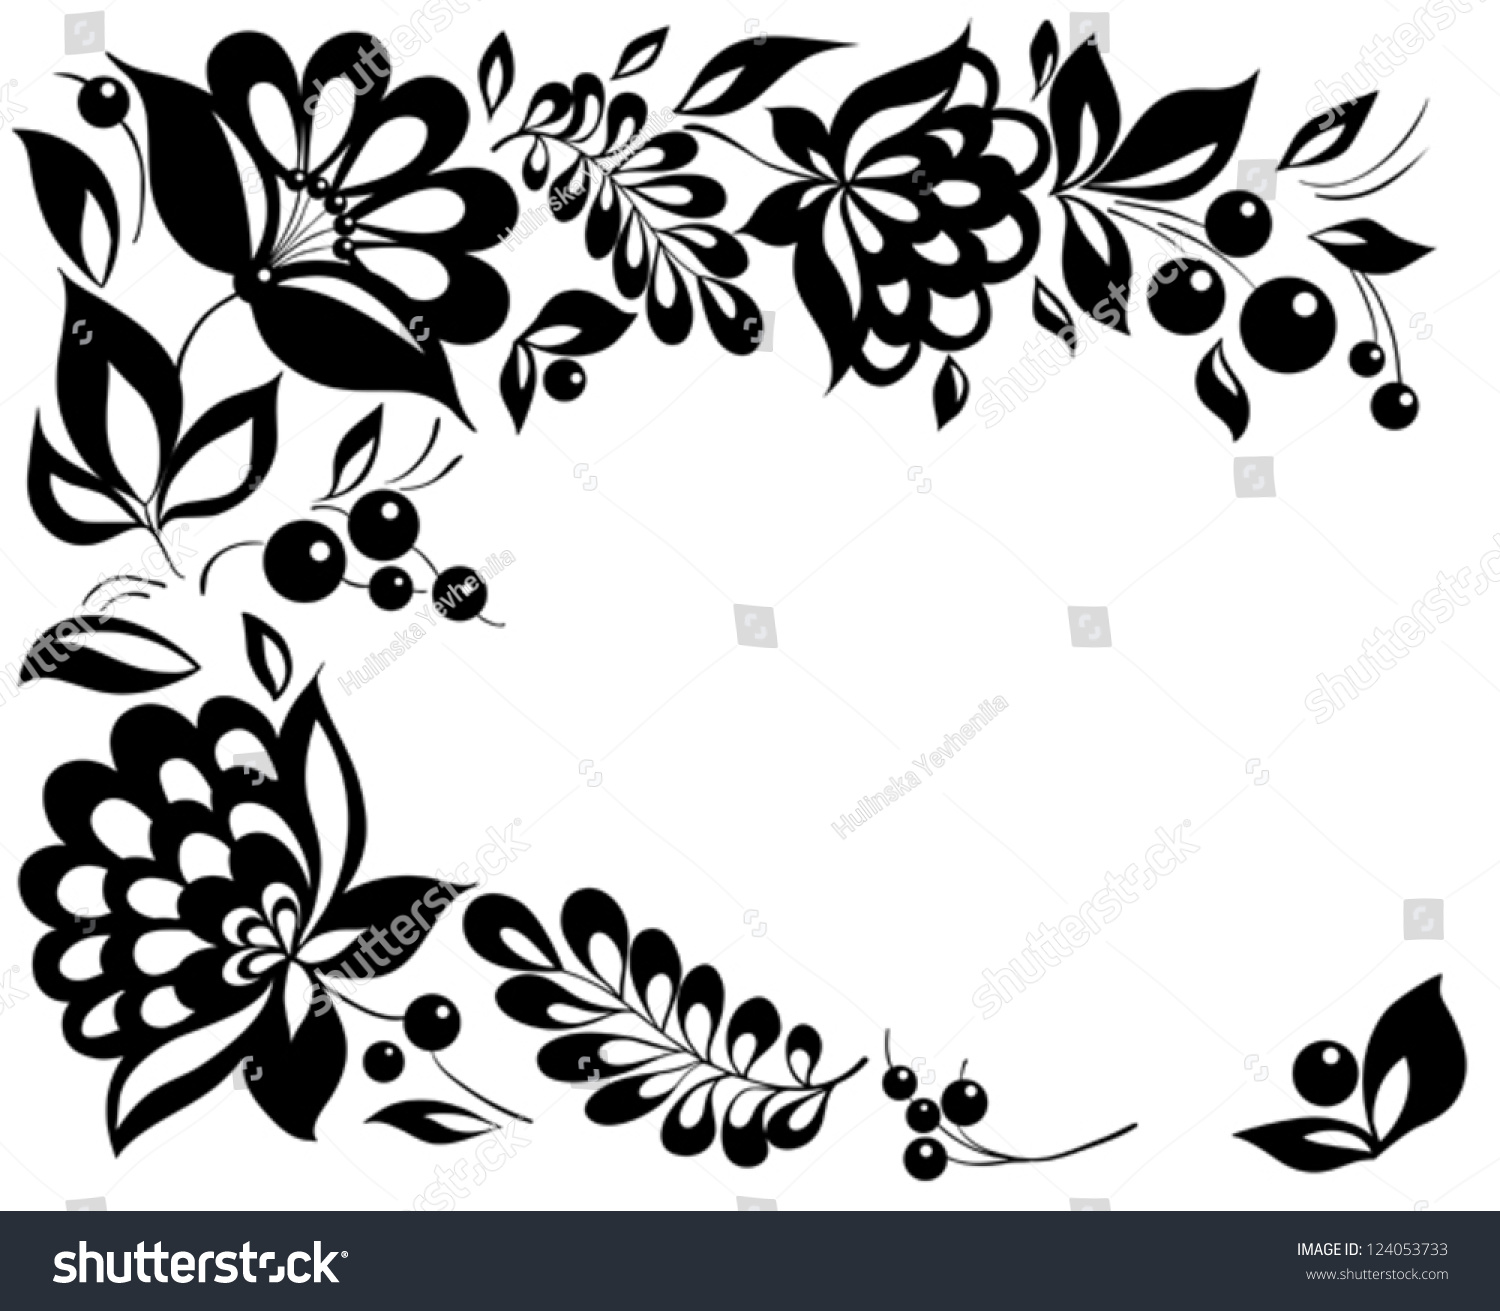 Blackandwhite Flowers Leaves Floral Design Element Stock Vector